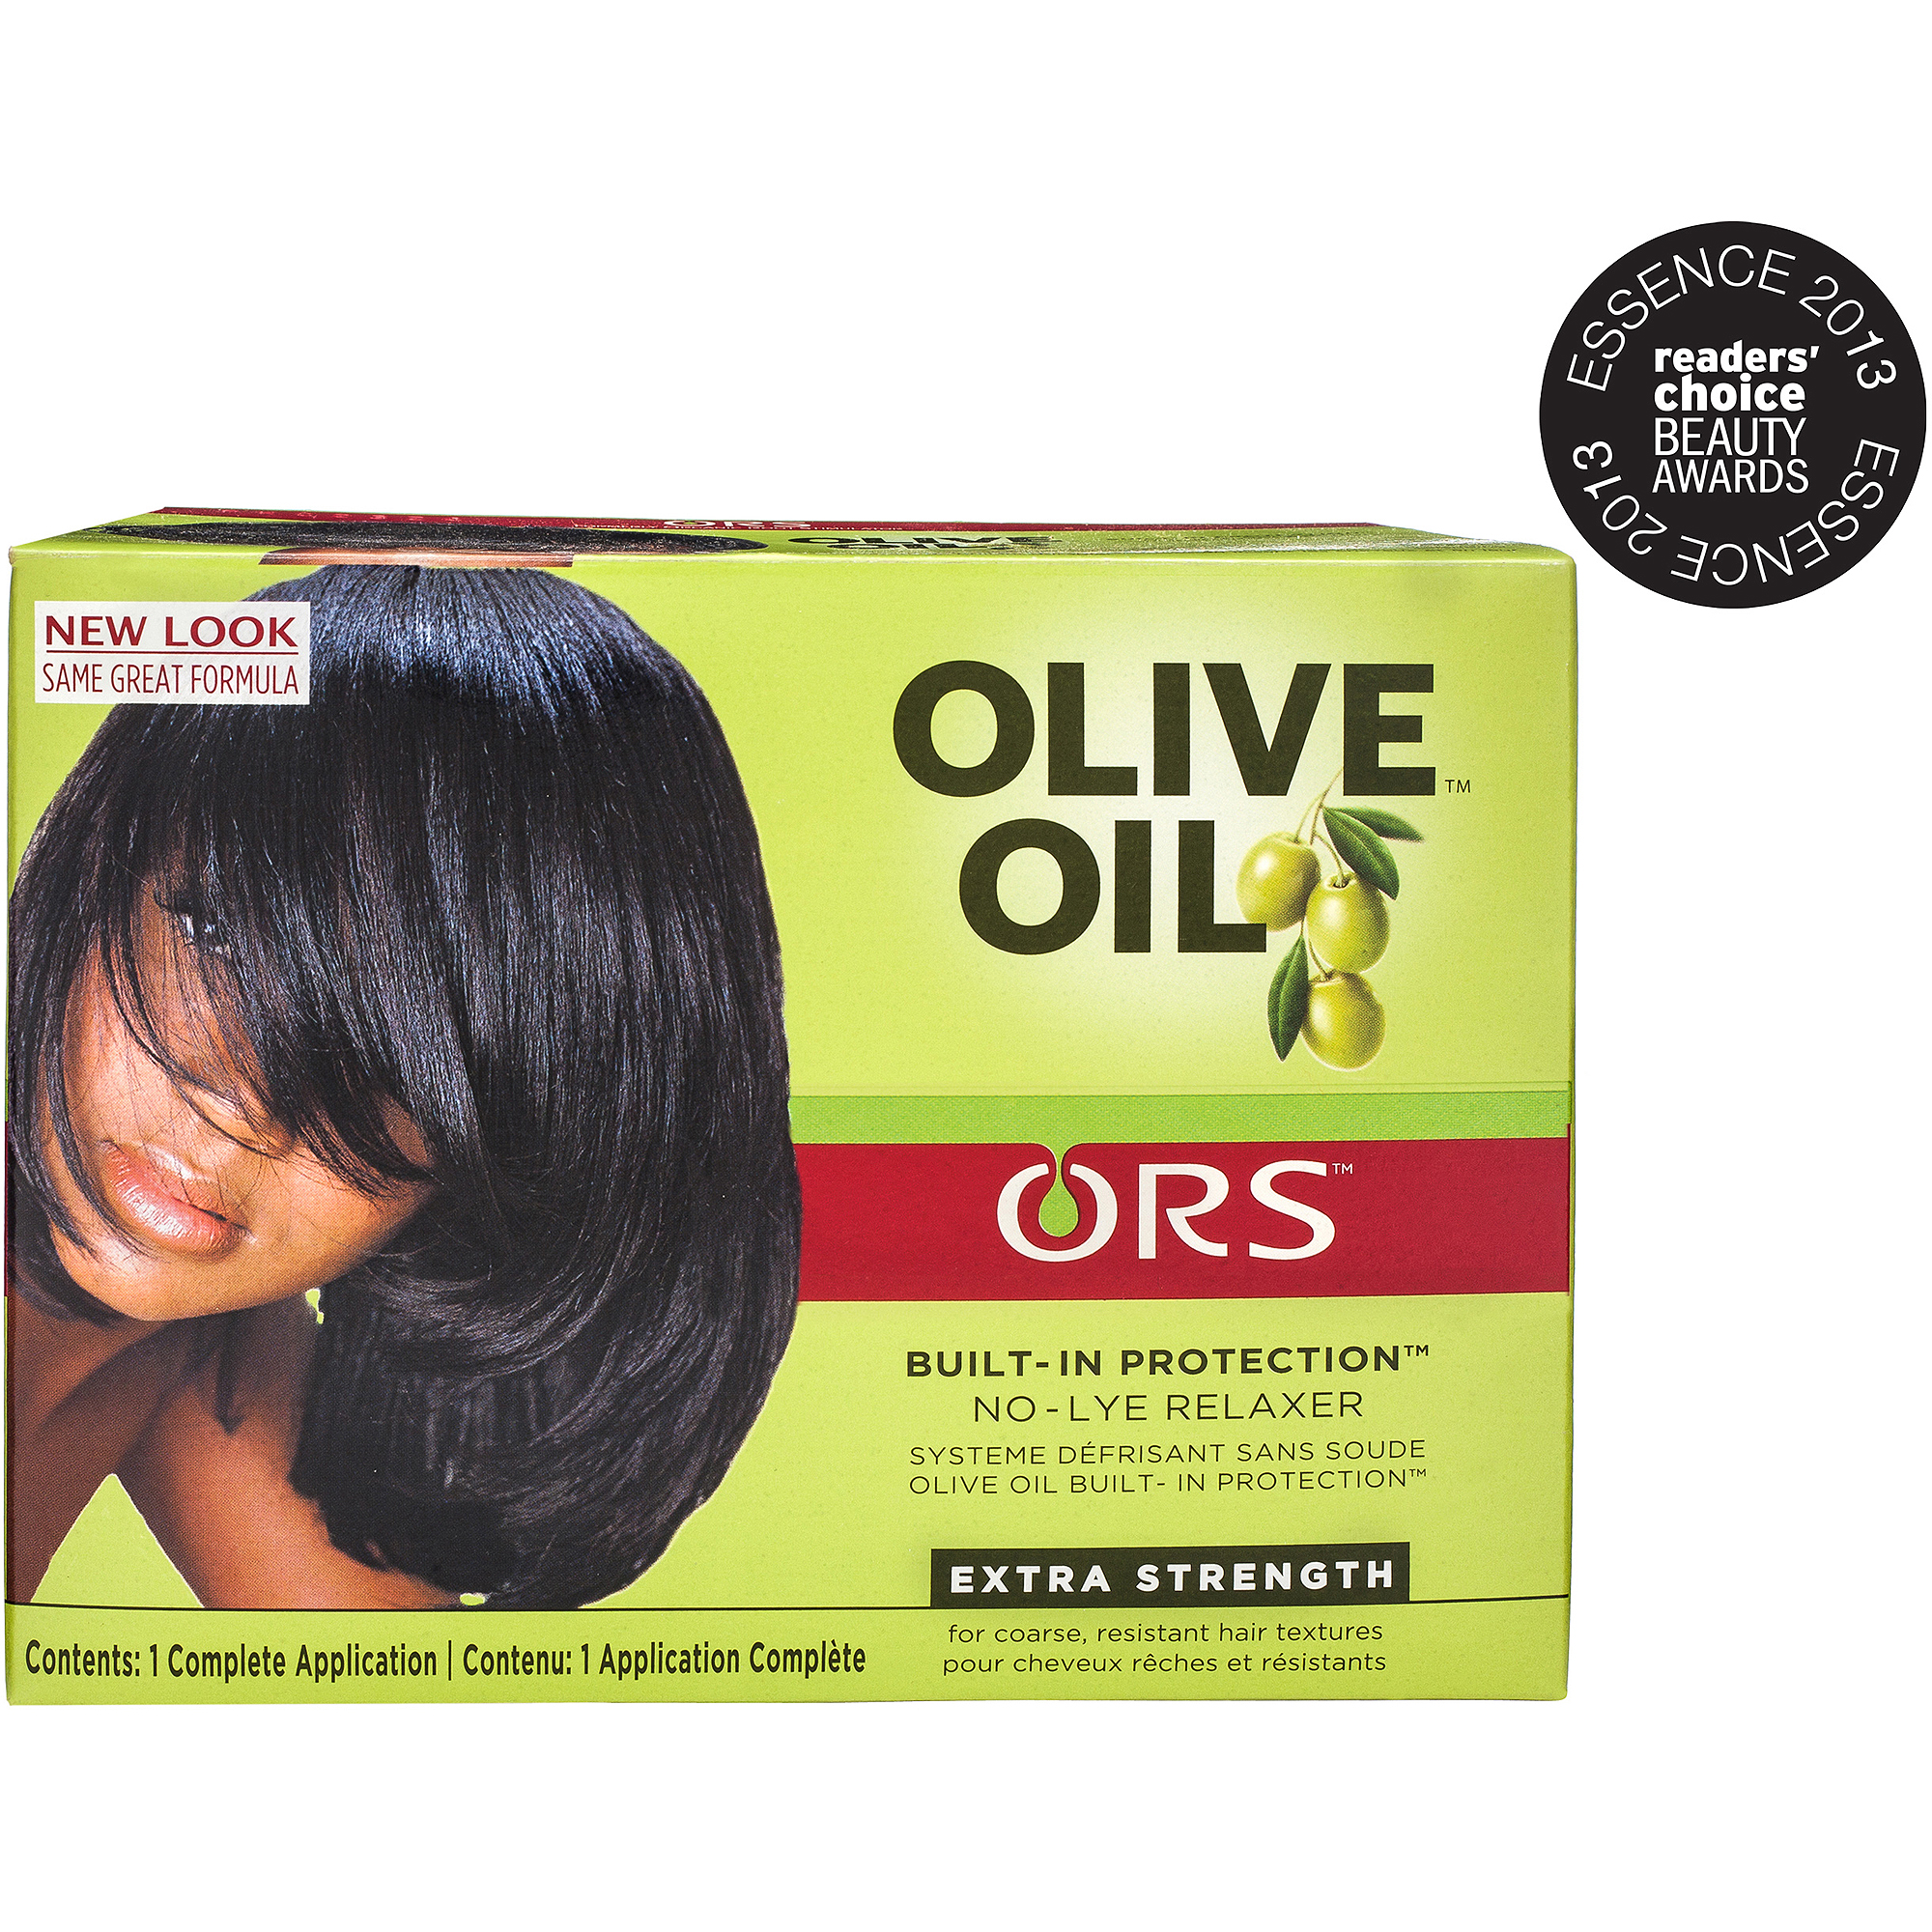 ORS™ Olive Oil Built-In Protection No-Lye Hair Relaxer™  Extra Strength